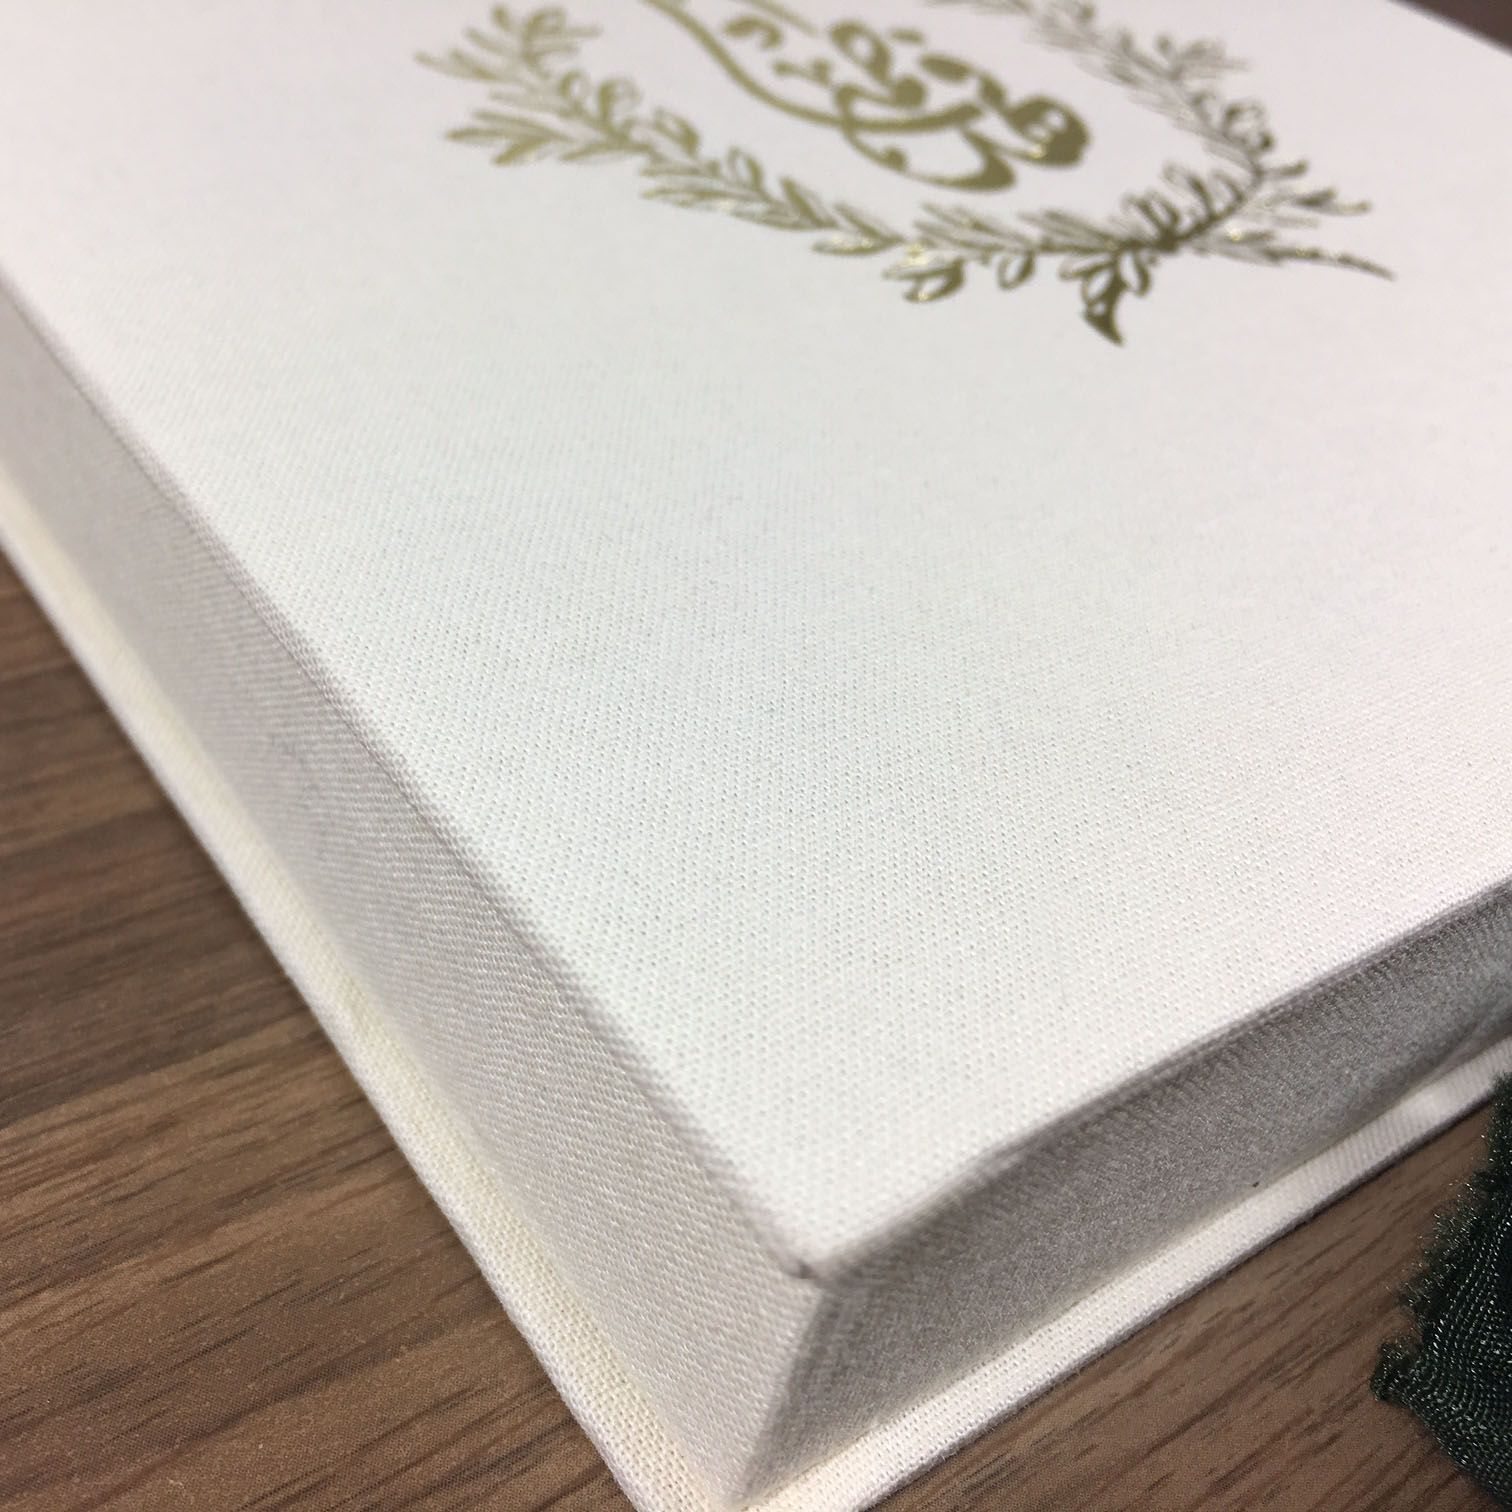 Linen box | Wedding invitation boxes | Pinterest | Wedding boxes ...